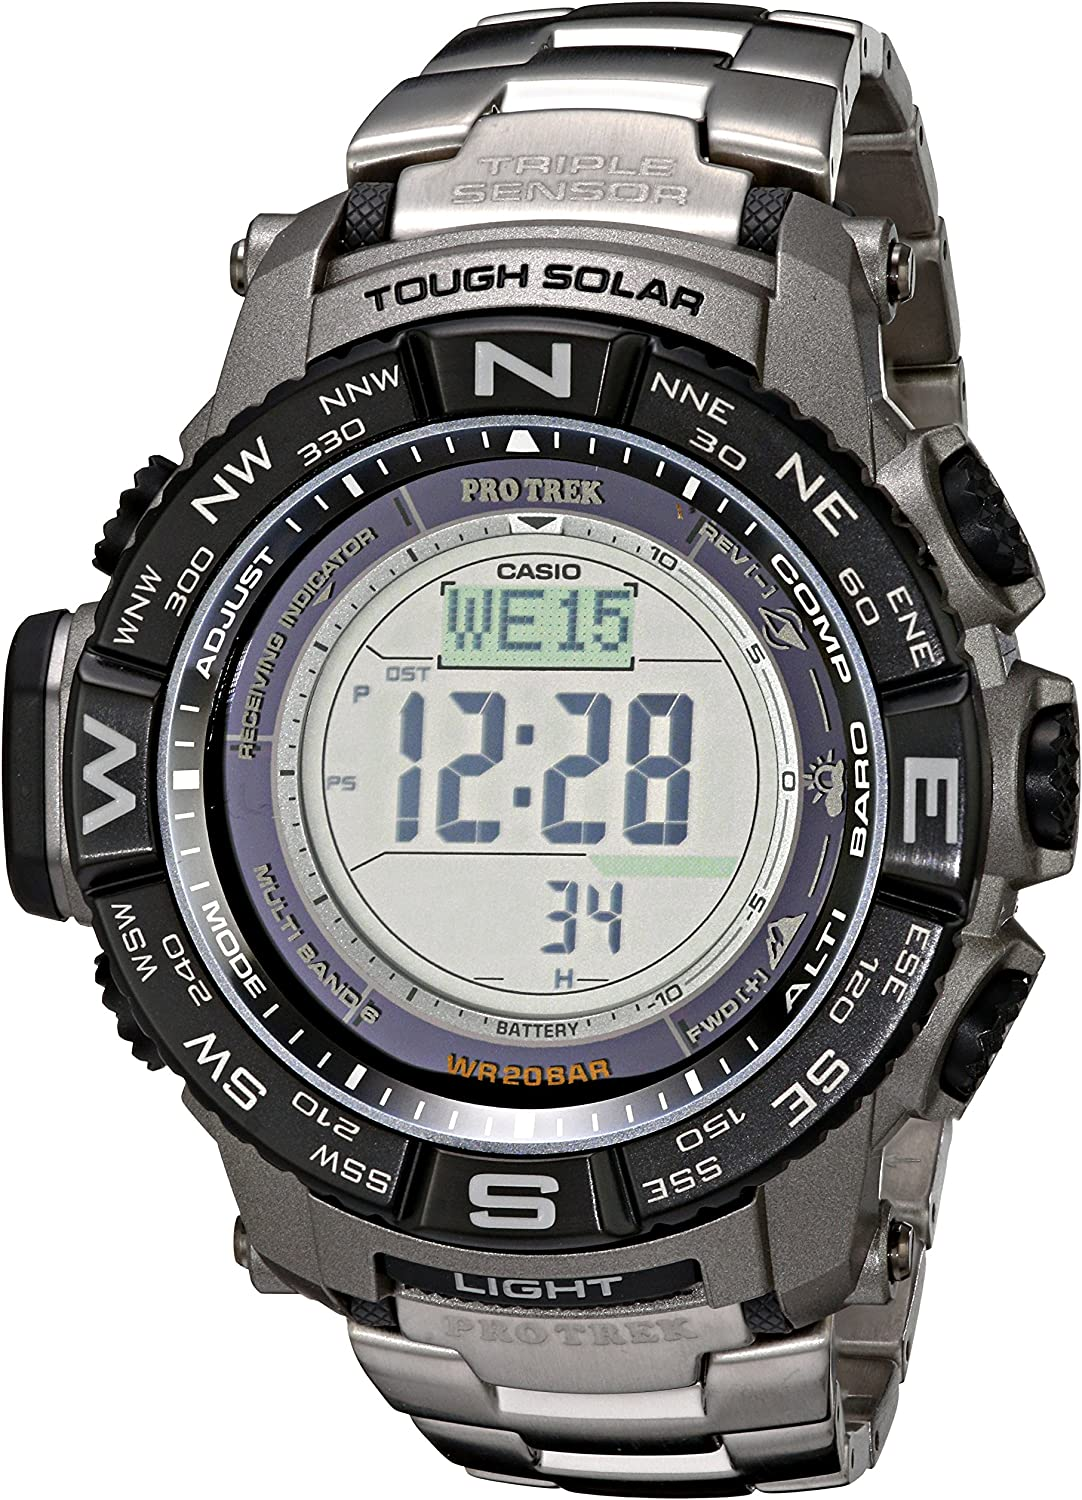 Casio Men s Pro Trek PRW-3500T-7CR Tough Solar Triple Sensor Digital Sport Watch